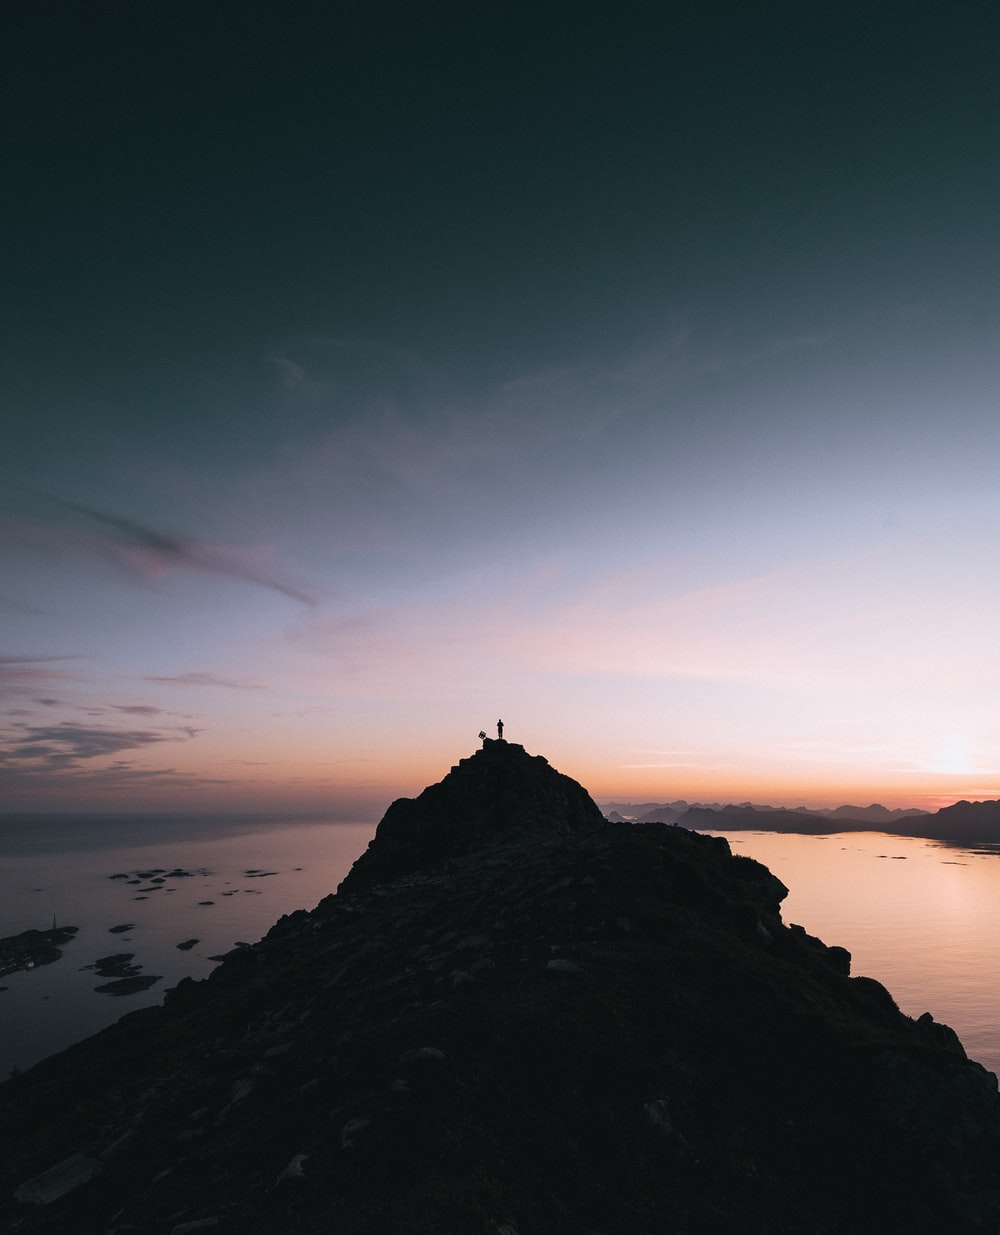 silhouette on person standing on top mountain cliff